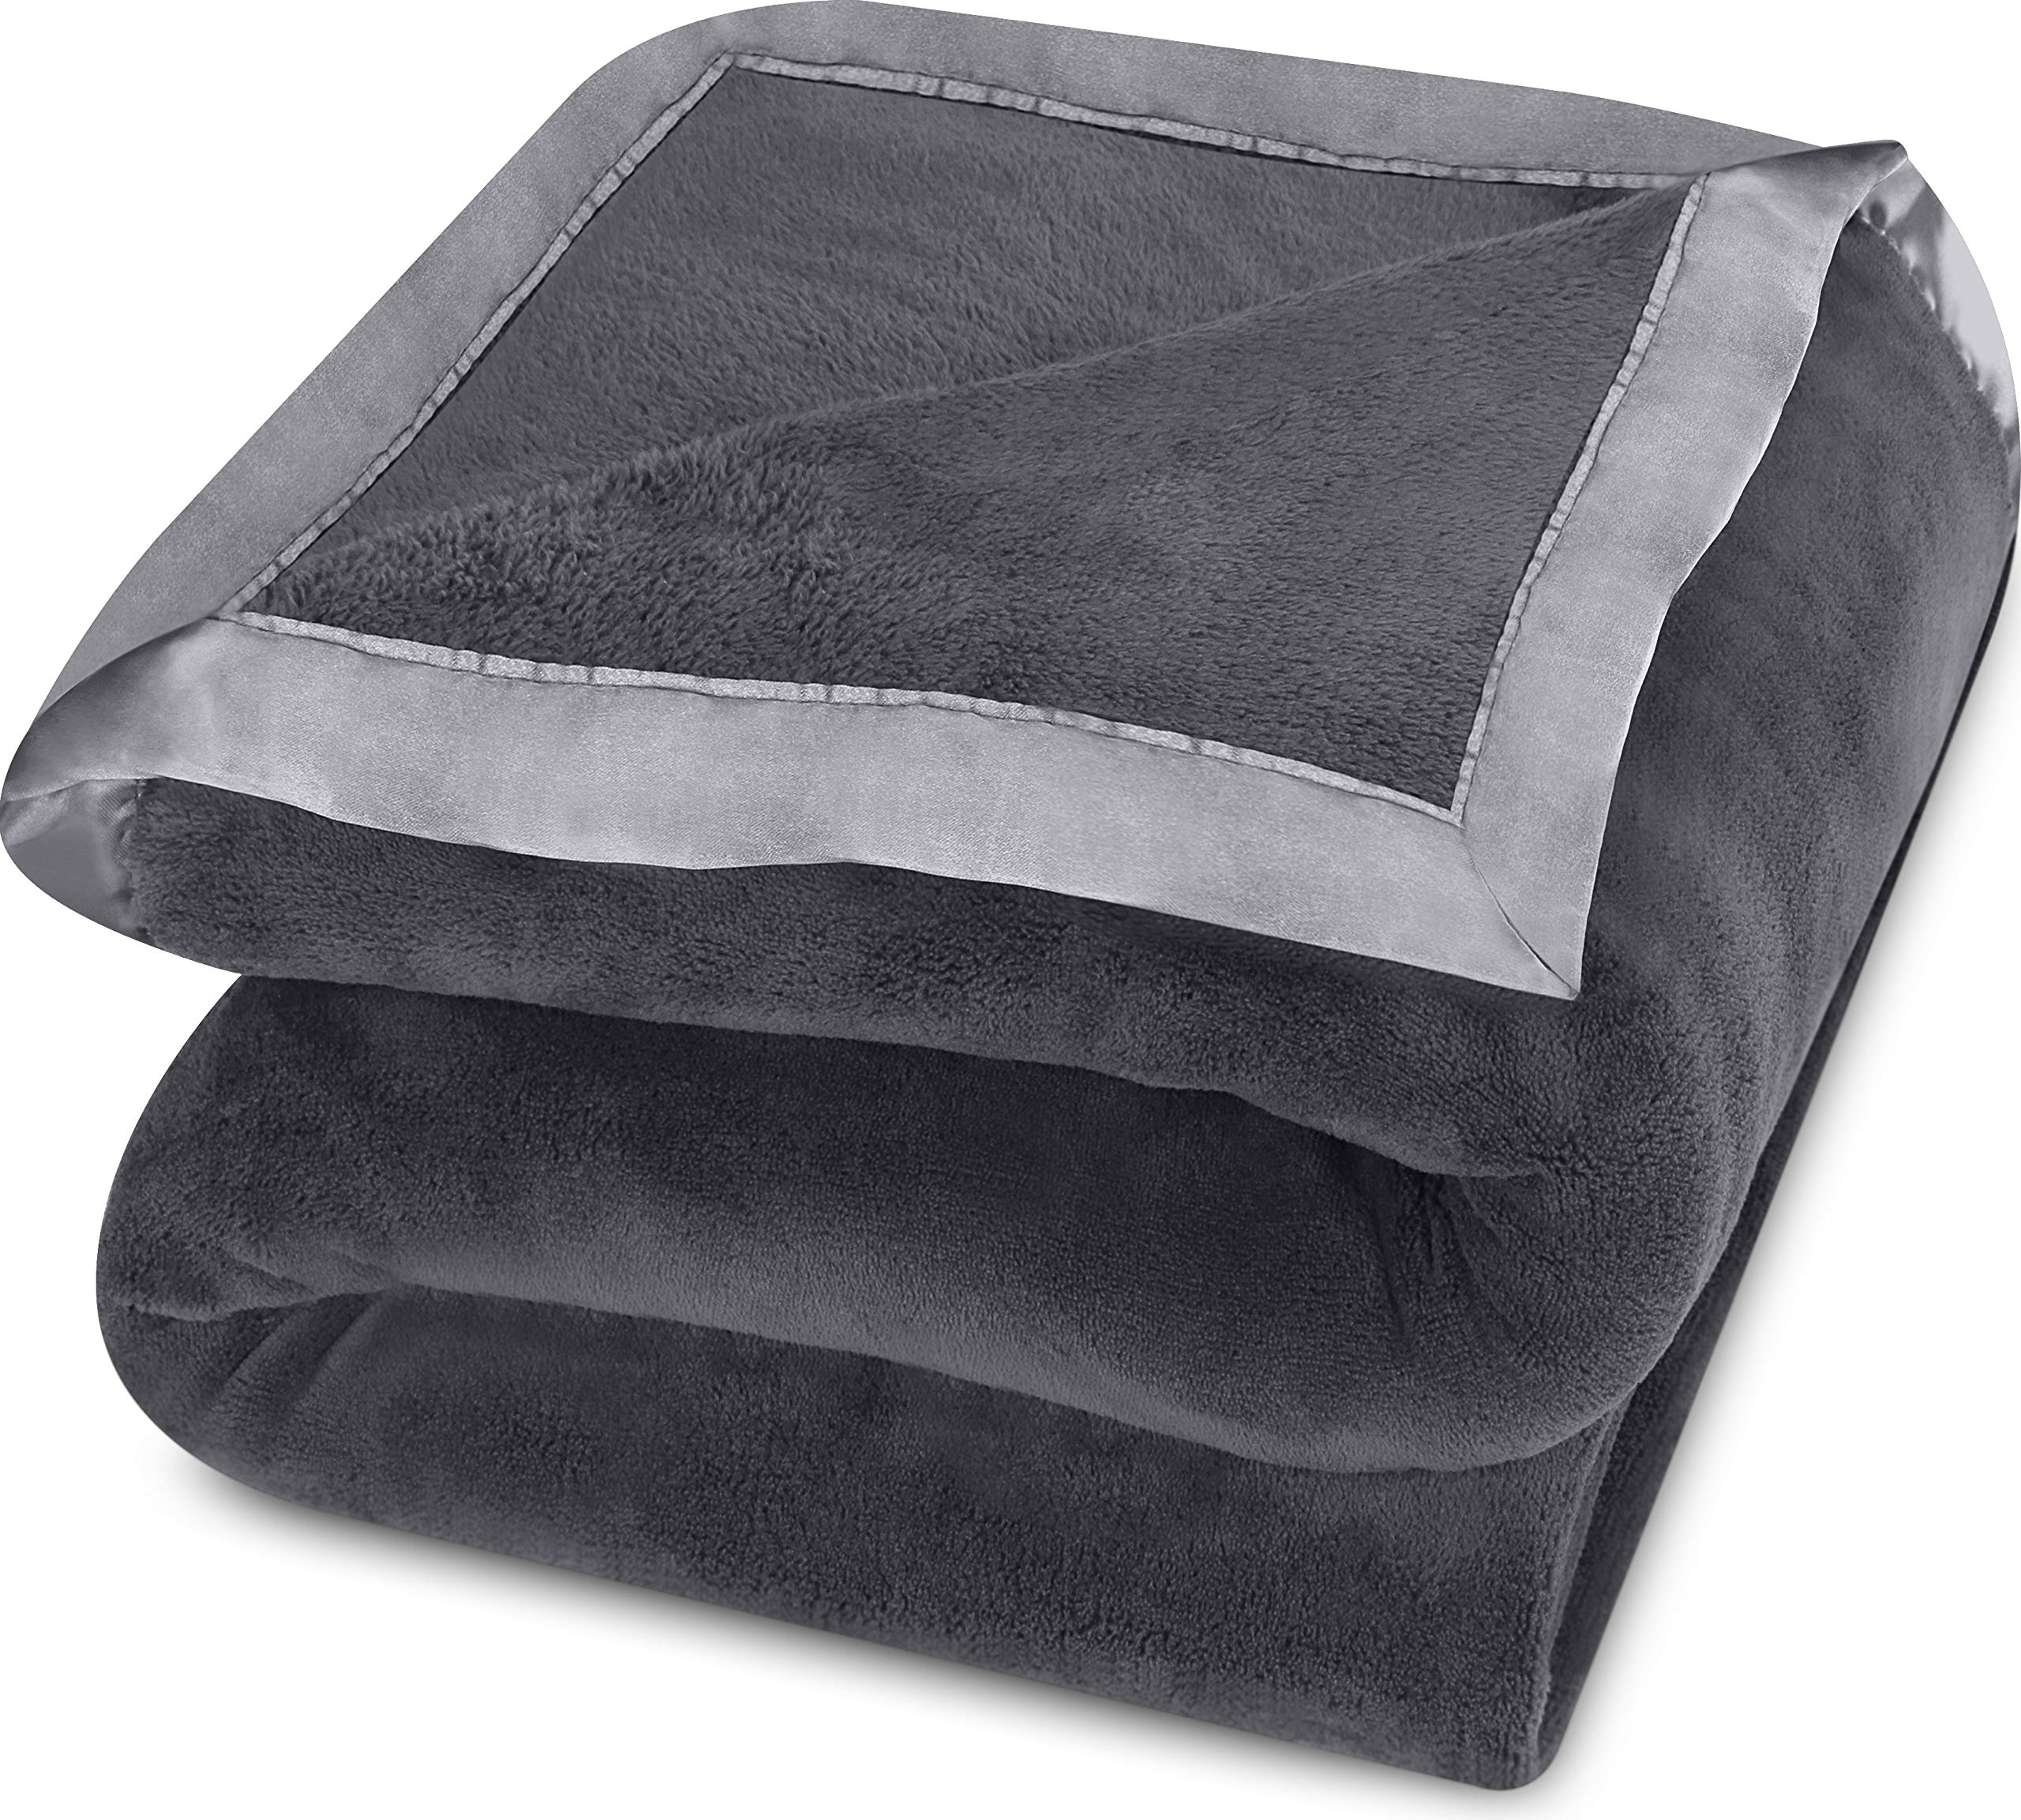 Utopia Bedding Coral Fleece Blanket with Sateen Edges (Grey, King) – Extra Soft Brush Fabric – Super Warm, Lightweight Bed/Couch Blanket – Easy Care